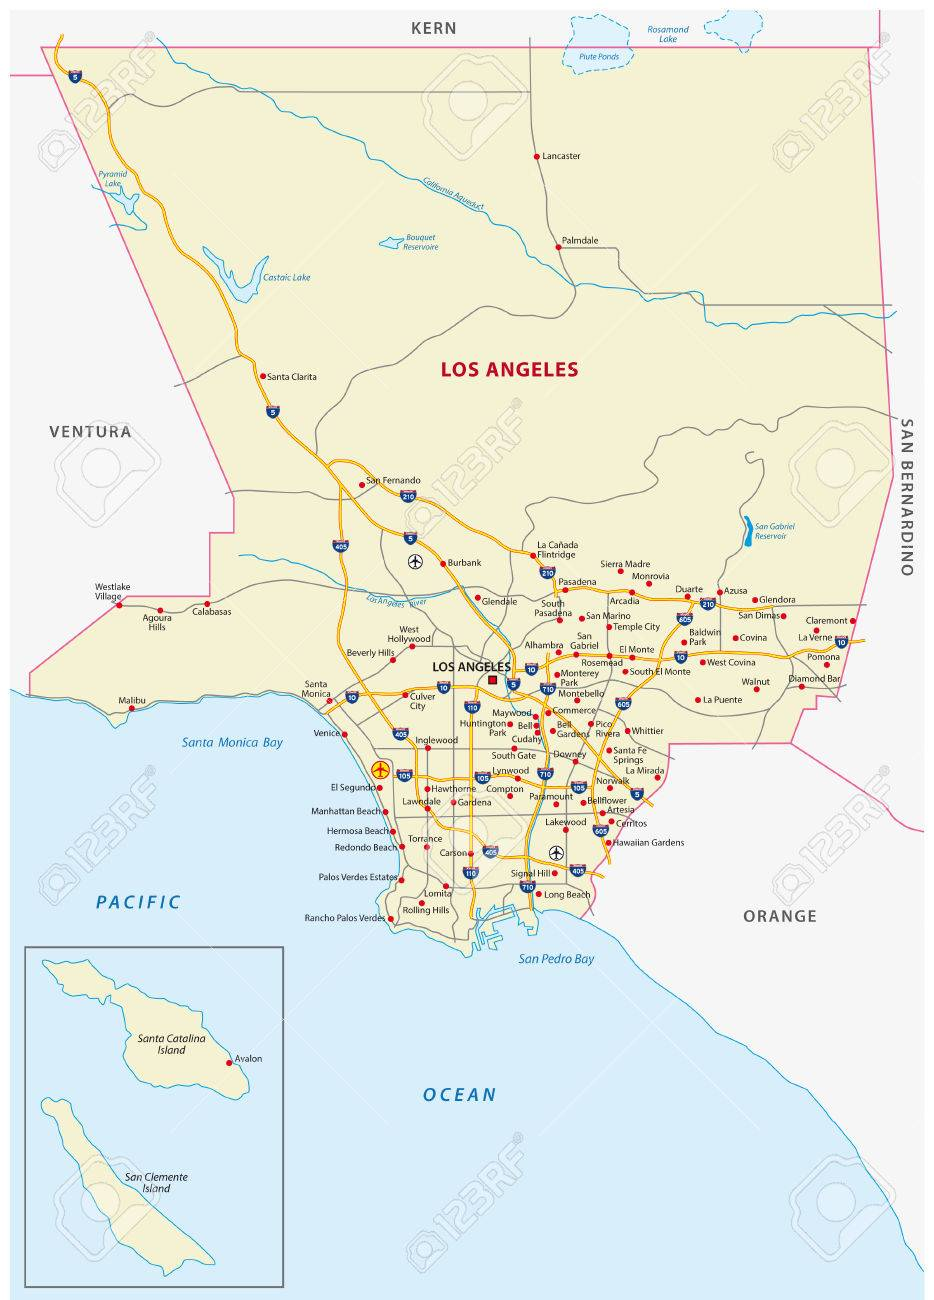 Los Angeles County Map Royalty Free Cliparts Vectors And Stock - Los angeles map vector